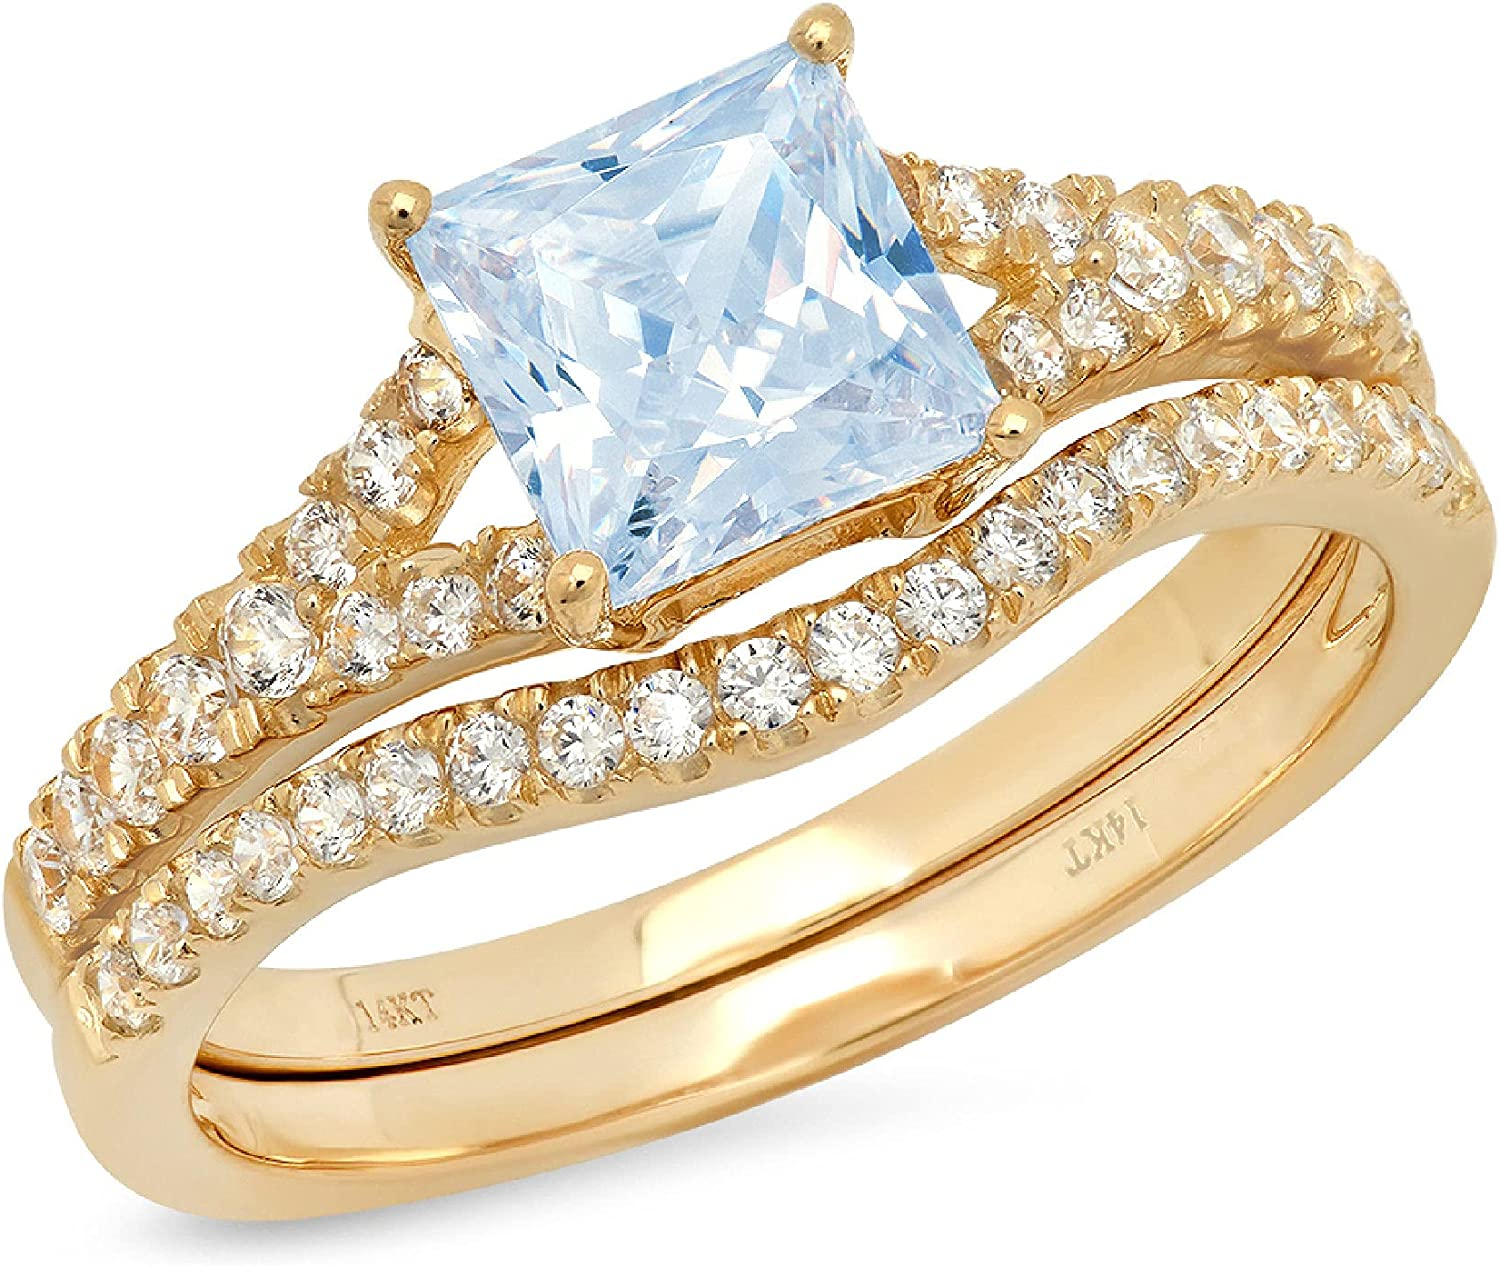 1.95ct Princess Cut Pave Solitaire with Accent VVS1 Ideal Natural Swiss Blue Topaz Engagement Promise Designer Anniversary Wedding Bridal Ring band set Curved 14k Yellow Gold